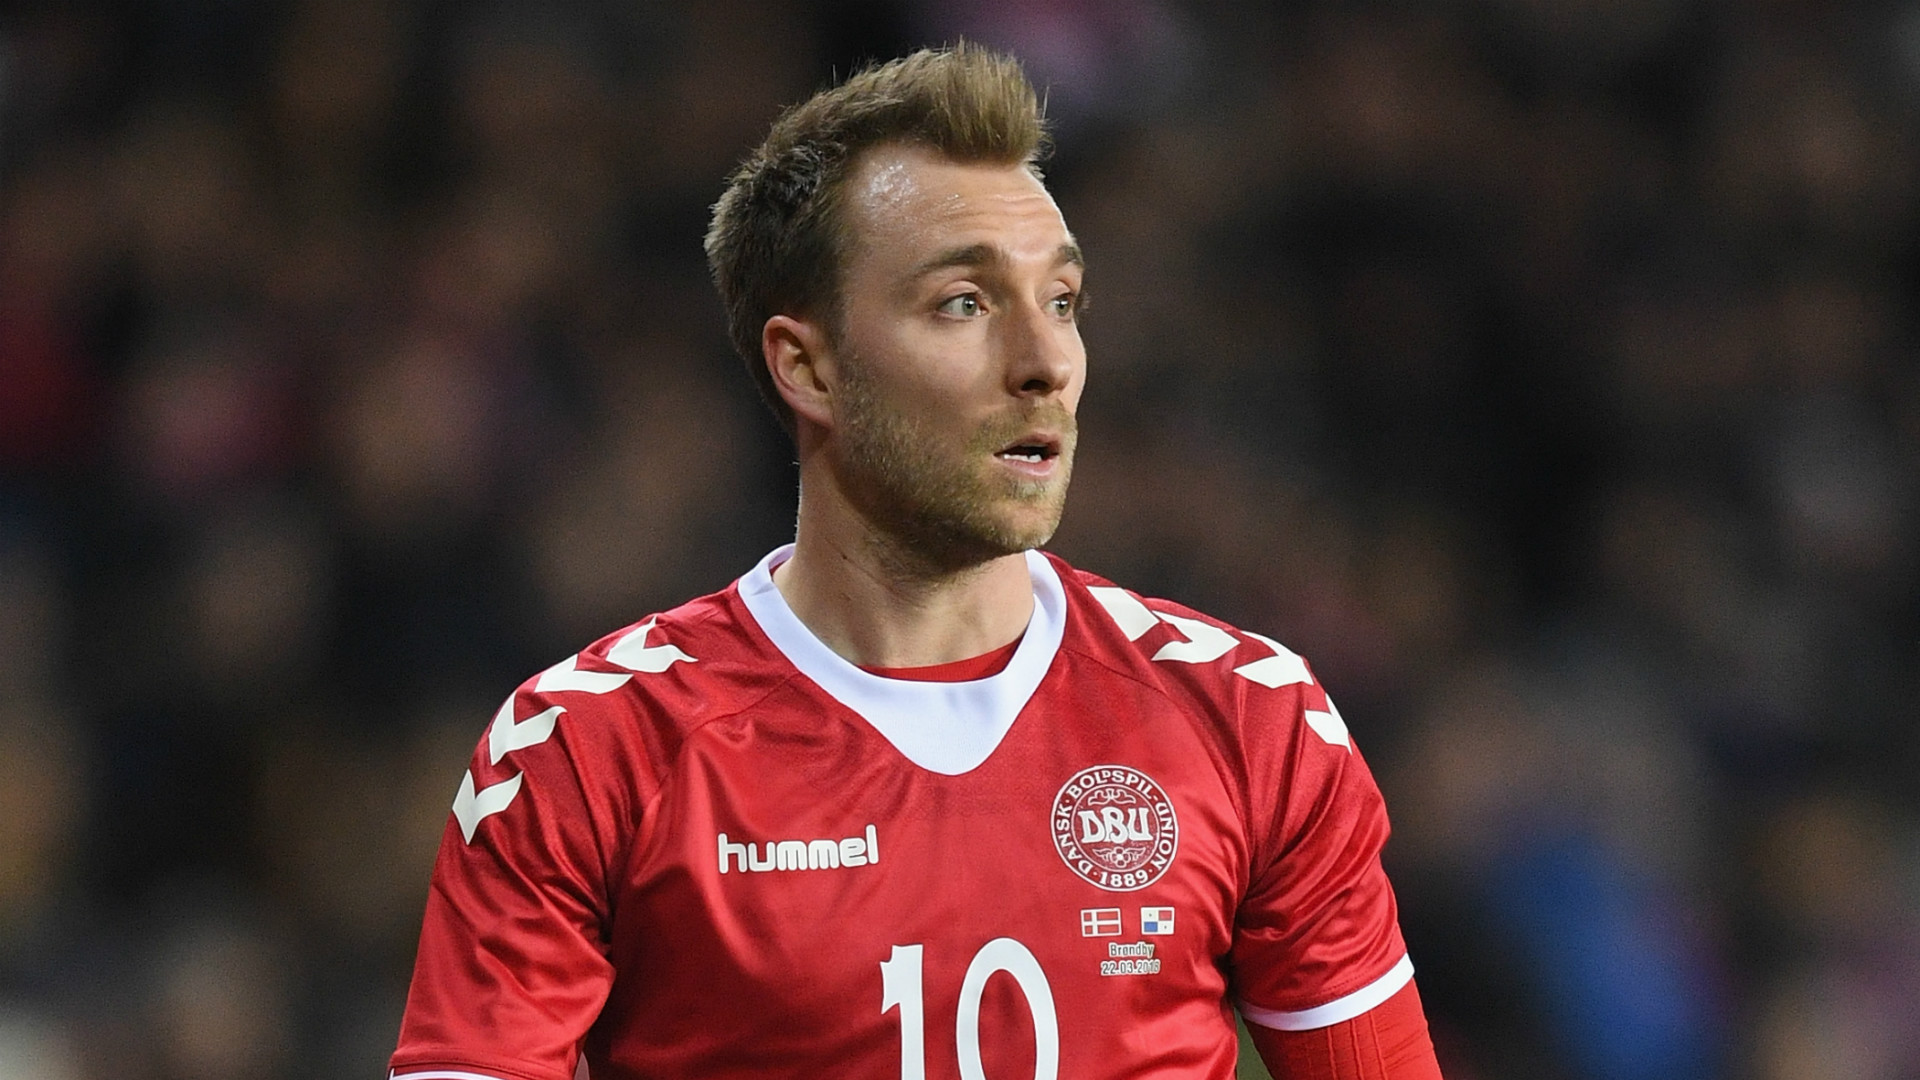 Winners and losers as Denmark narrowly beat Peru 1-0